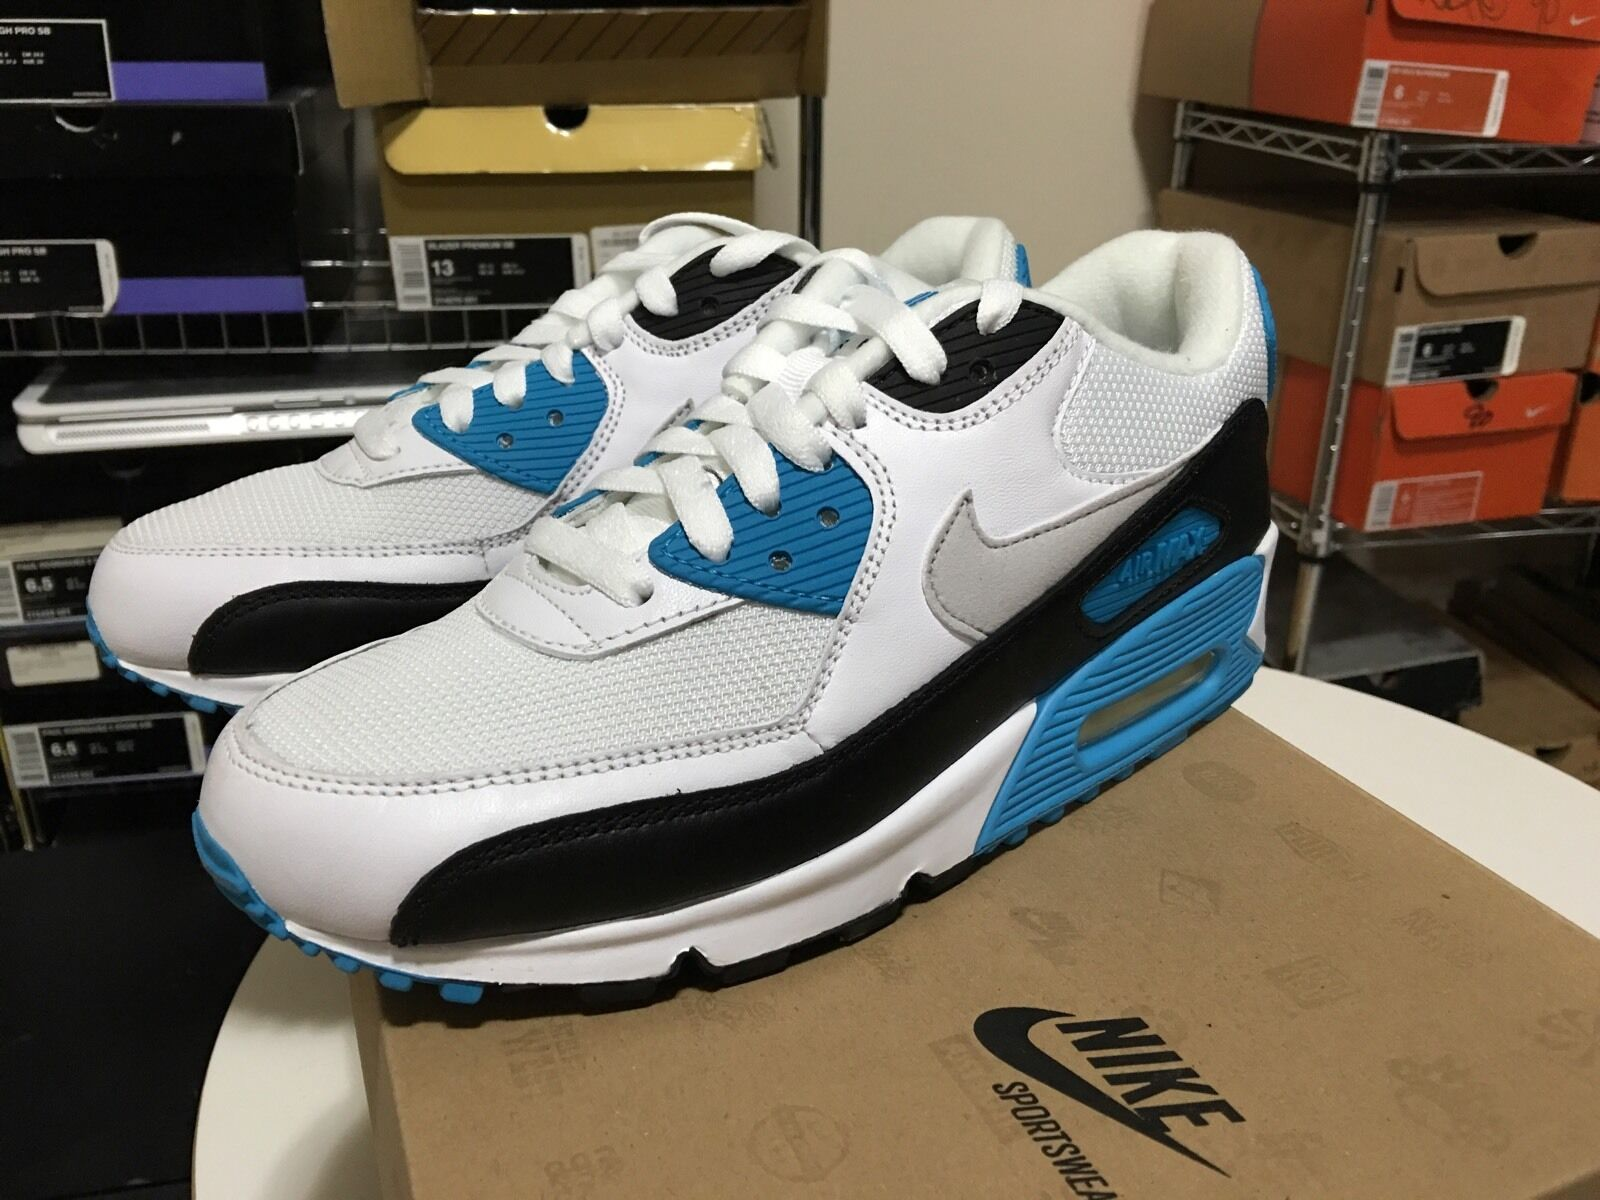 Nike Air Max 90 Size 6 Laser bluee DS History Of Air Hoa Bacon 1 95 97